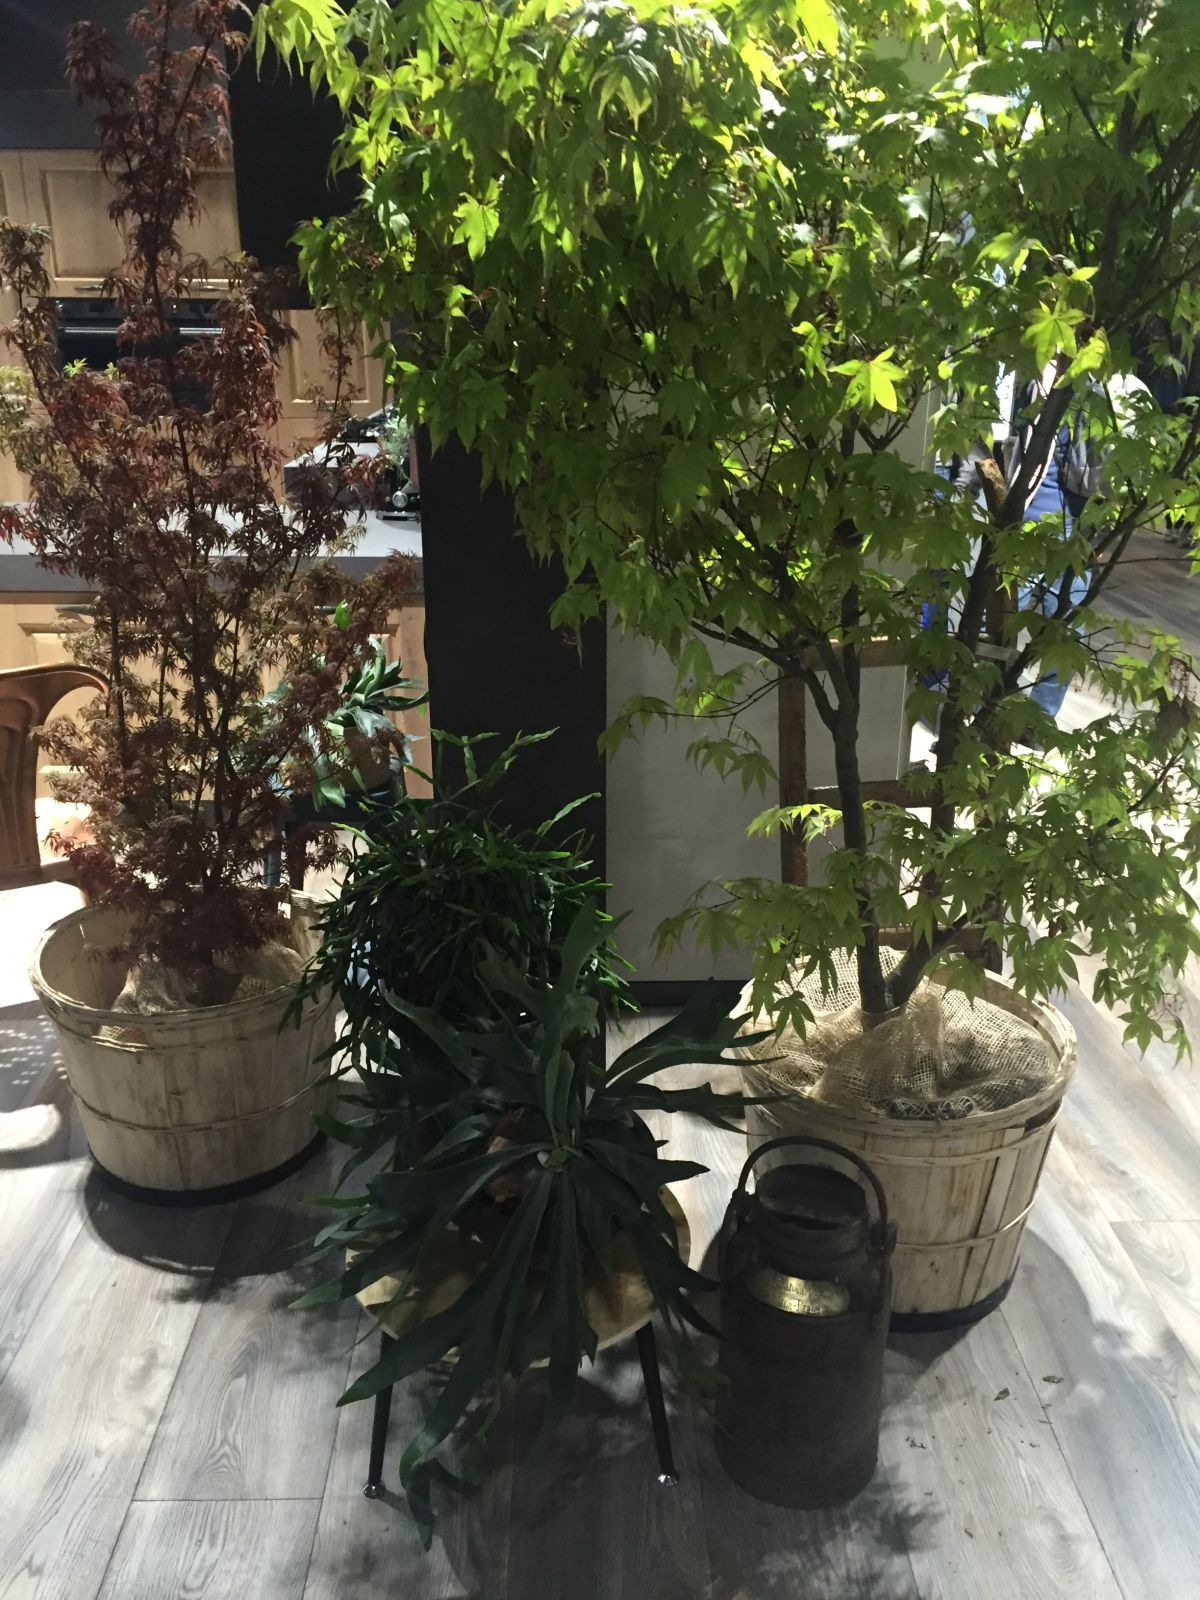 diff floor plants that purify air